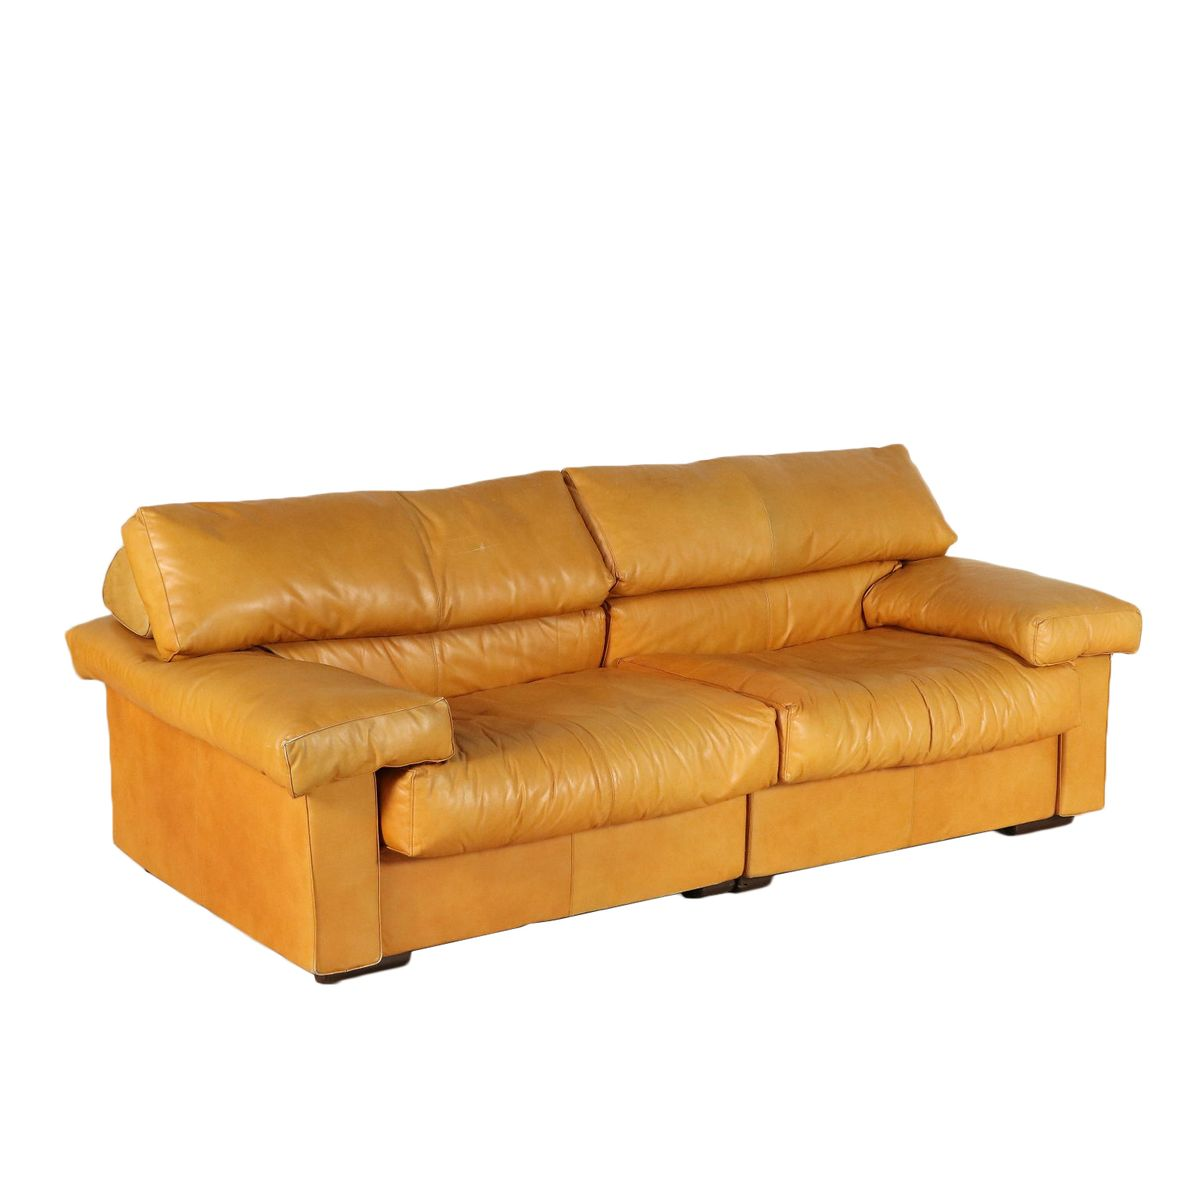 Divano B&b Coronado Prezzo Leather Sofa By Afra And Tobia Scarpa For B B Italia 1970s